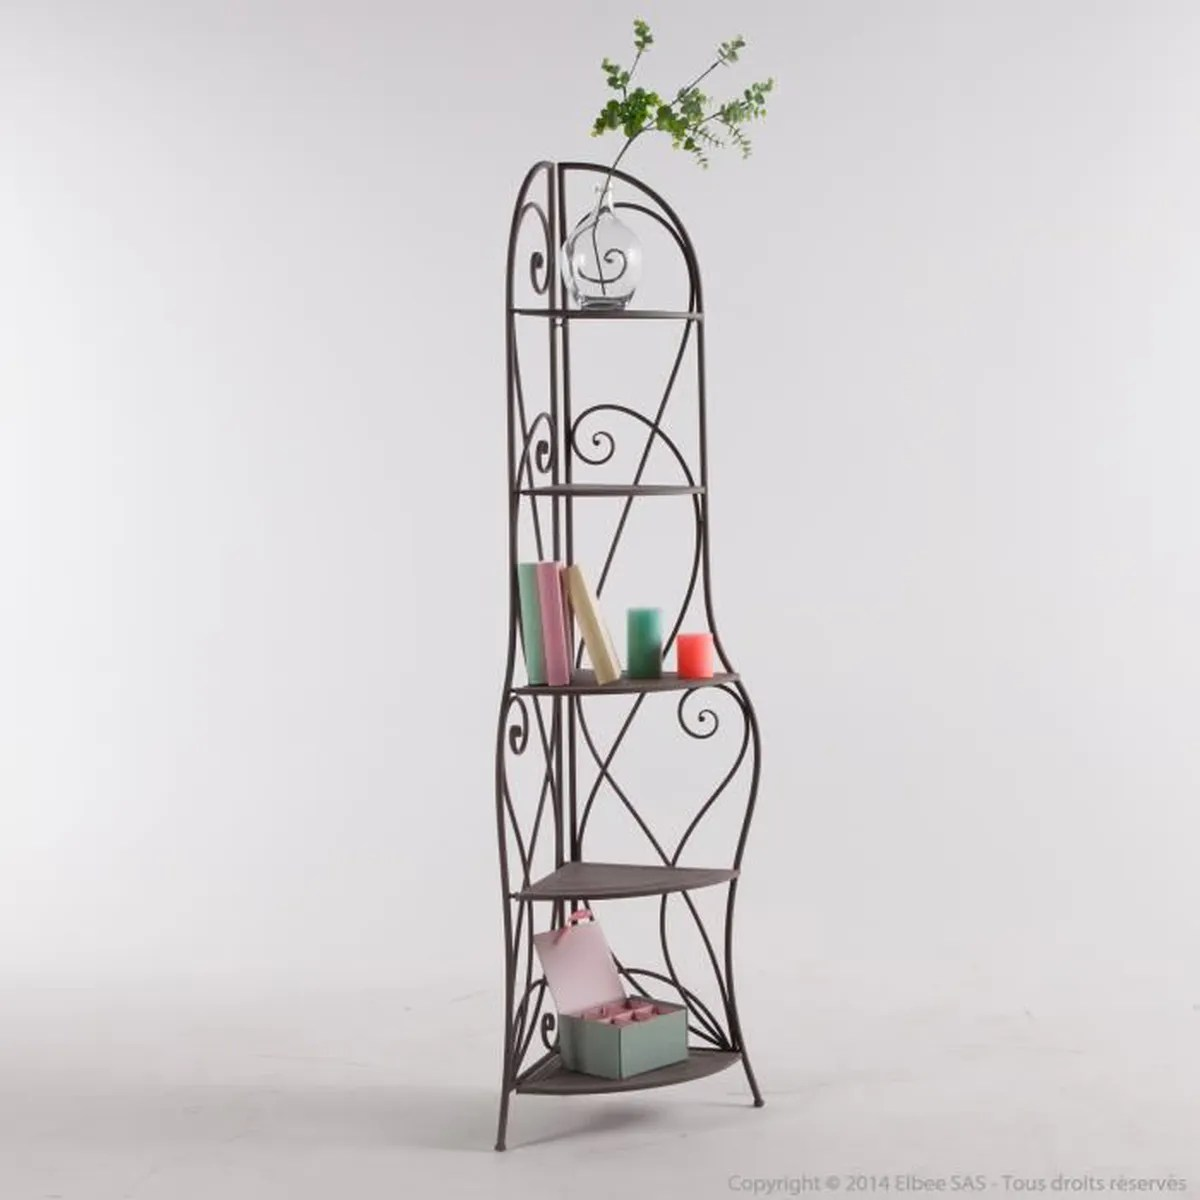 Meuble Fer Forgé Pas Cher Etagere Angle Fer Forge Achat Vente Etagere Angle Fer